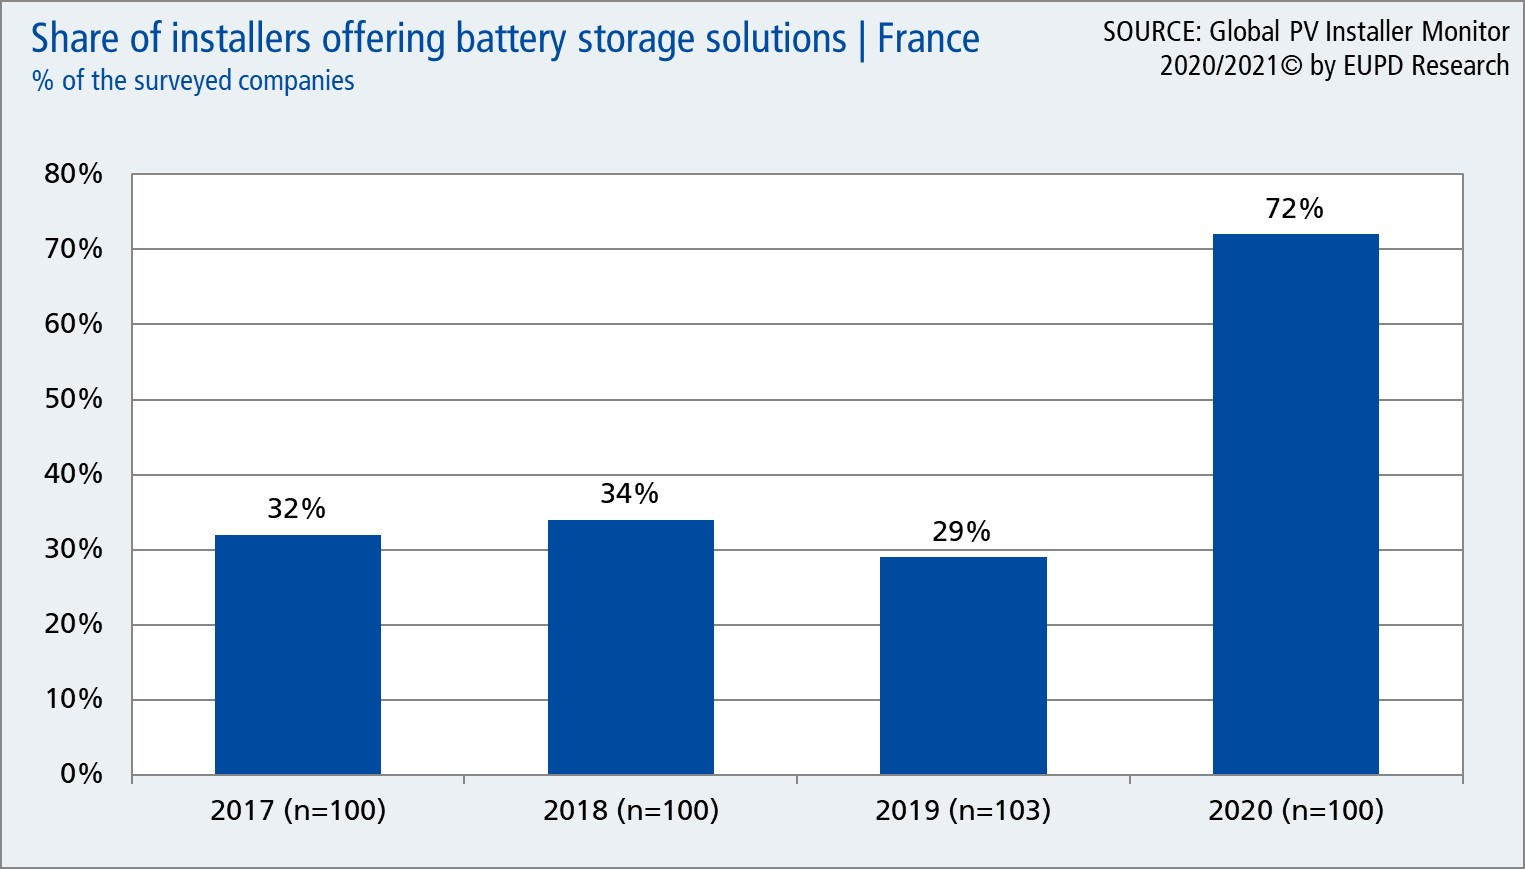 Graph: Share of French installers that are offering battery storage solutions from 2017 to 2020.